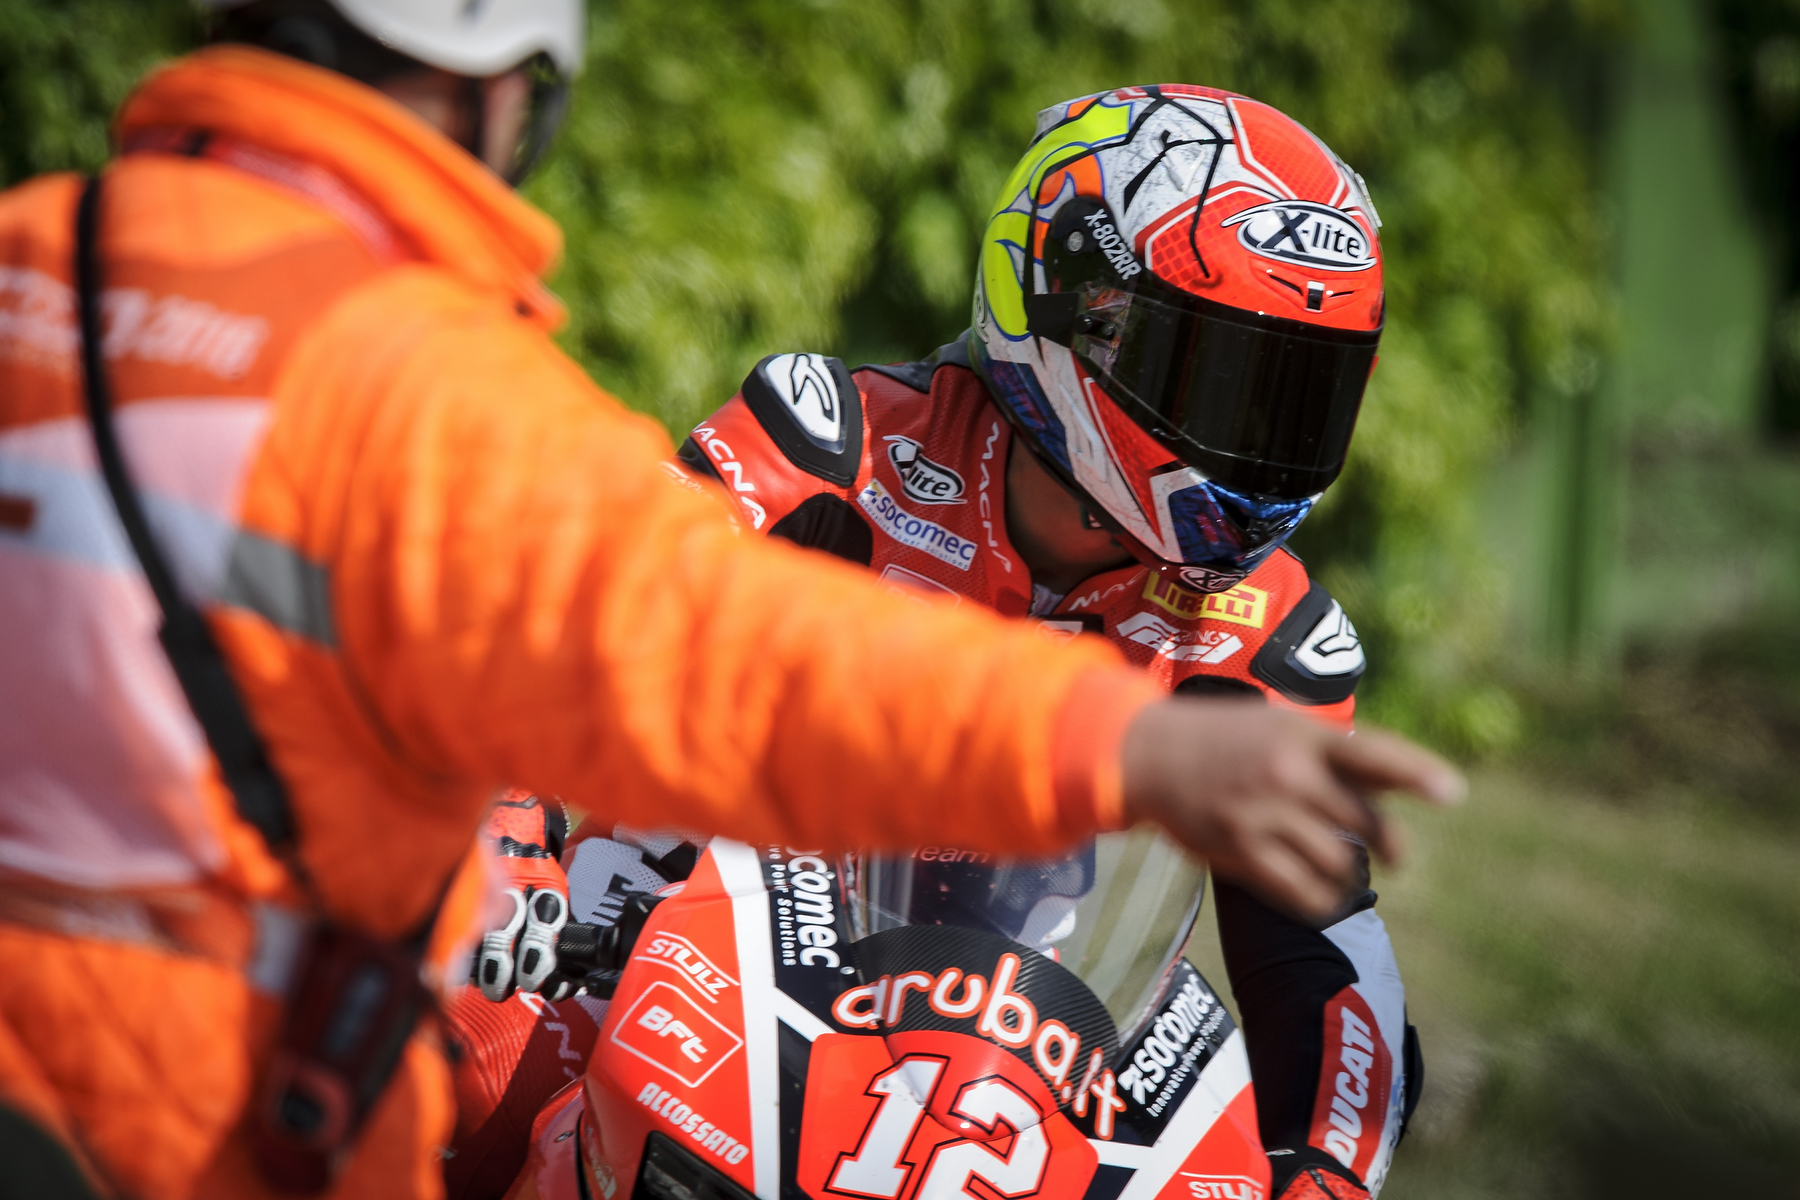 011_R05_Imola_gallery